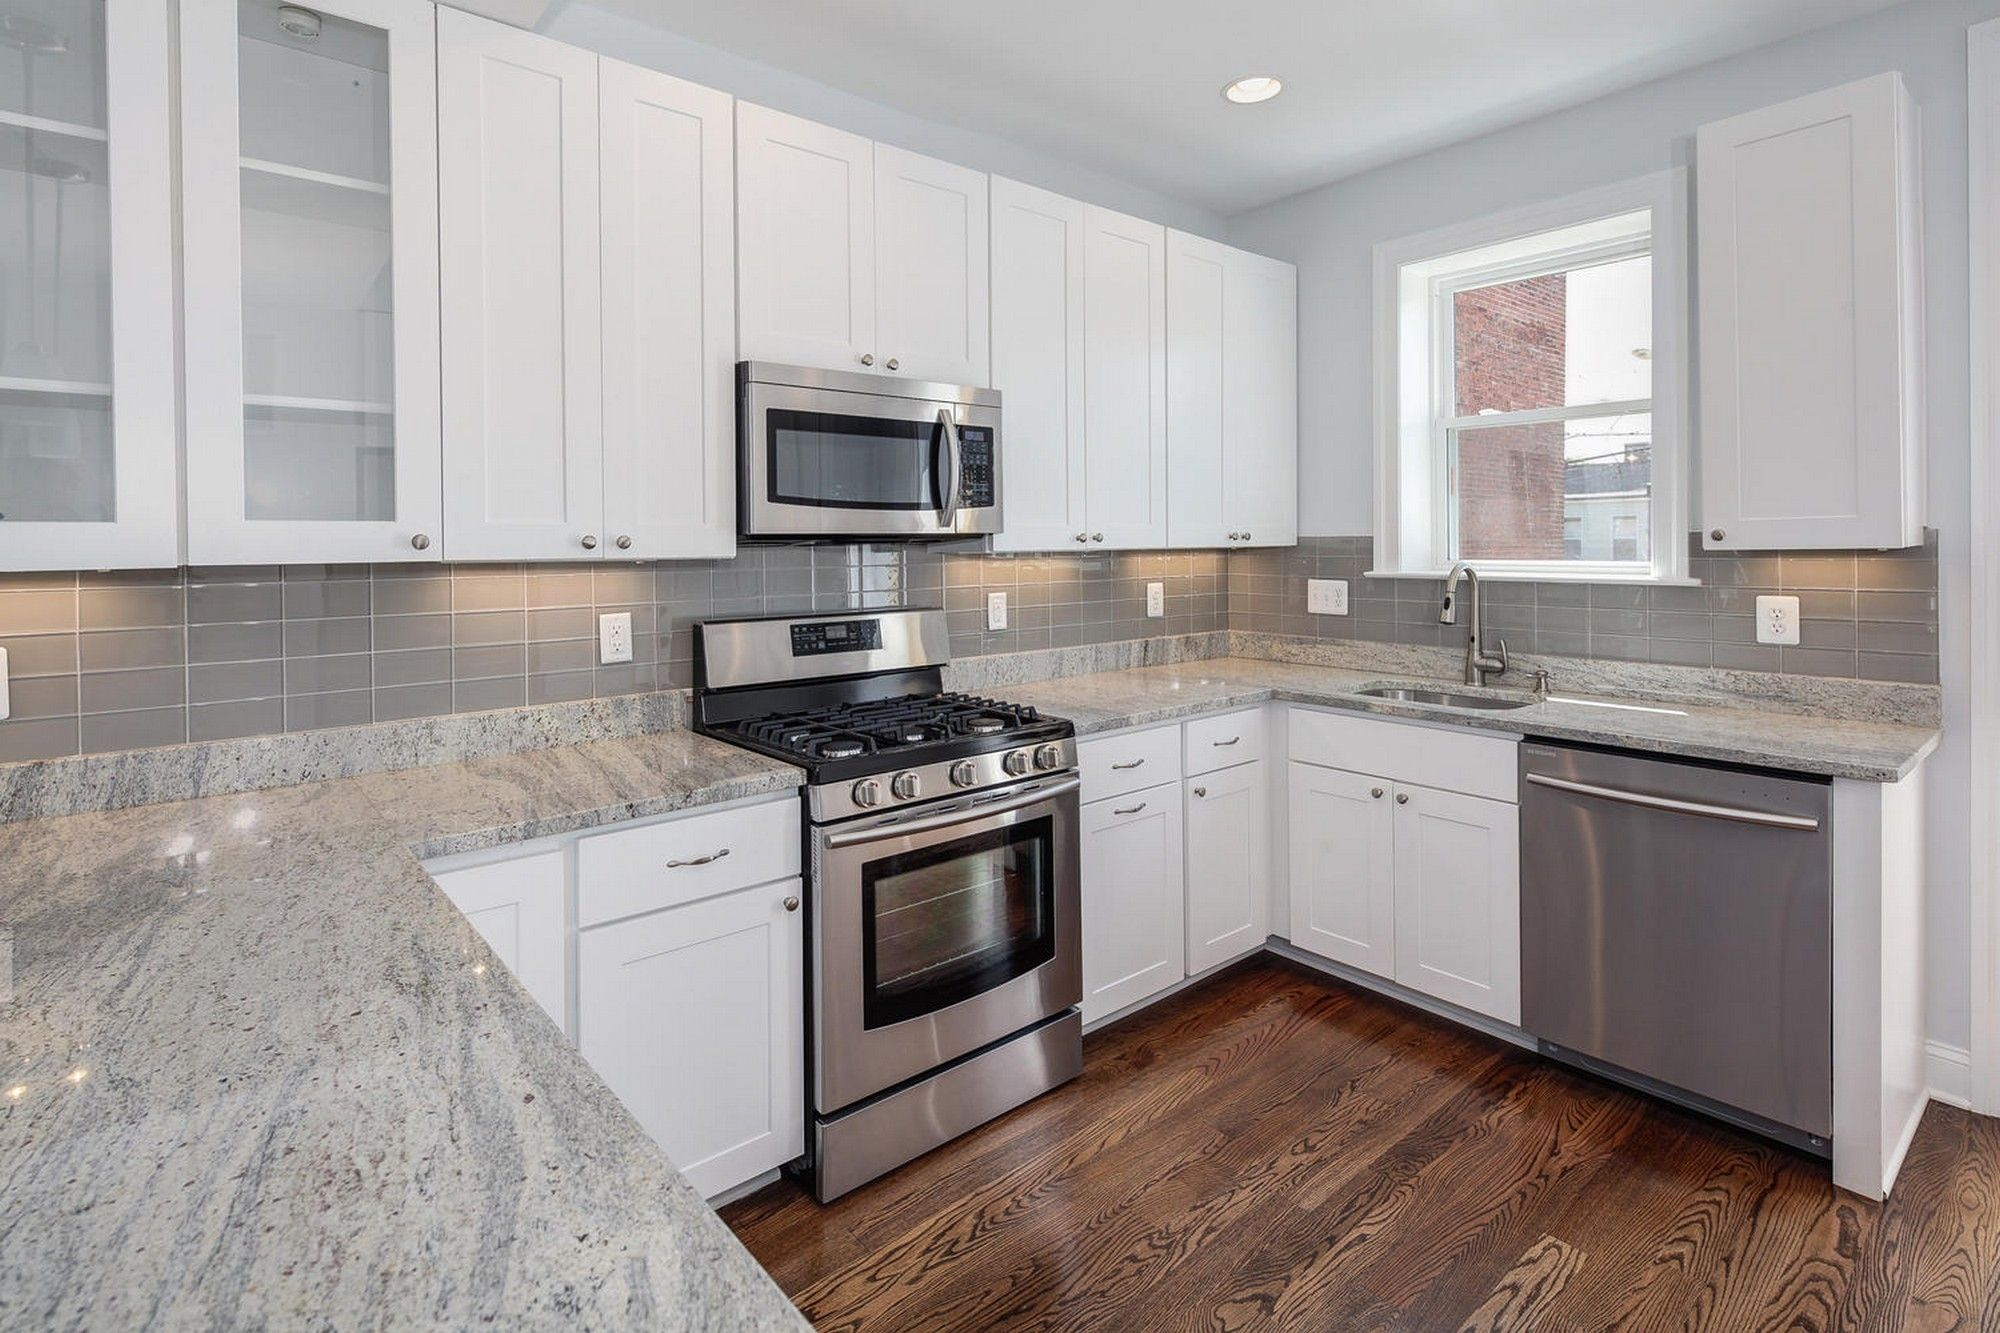 Clean White Floating Cabinets Inside Open Kitchen With U Shaped Counter And White Spring Granite